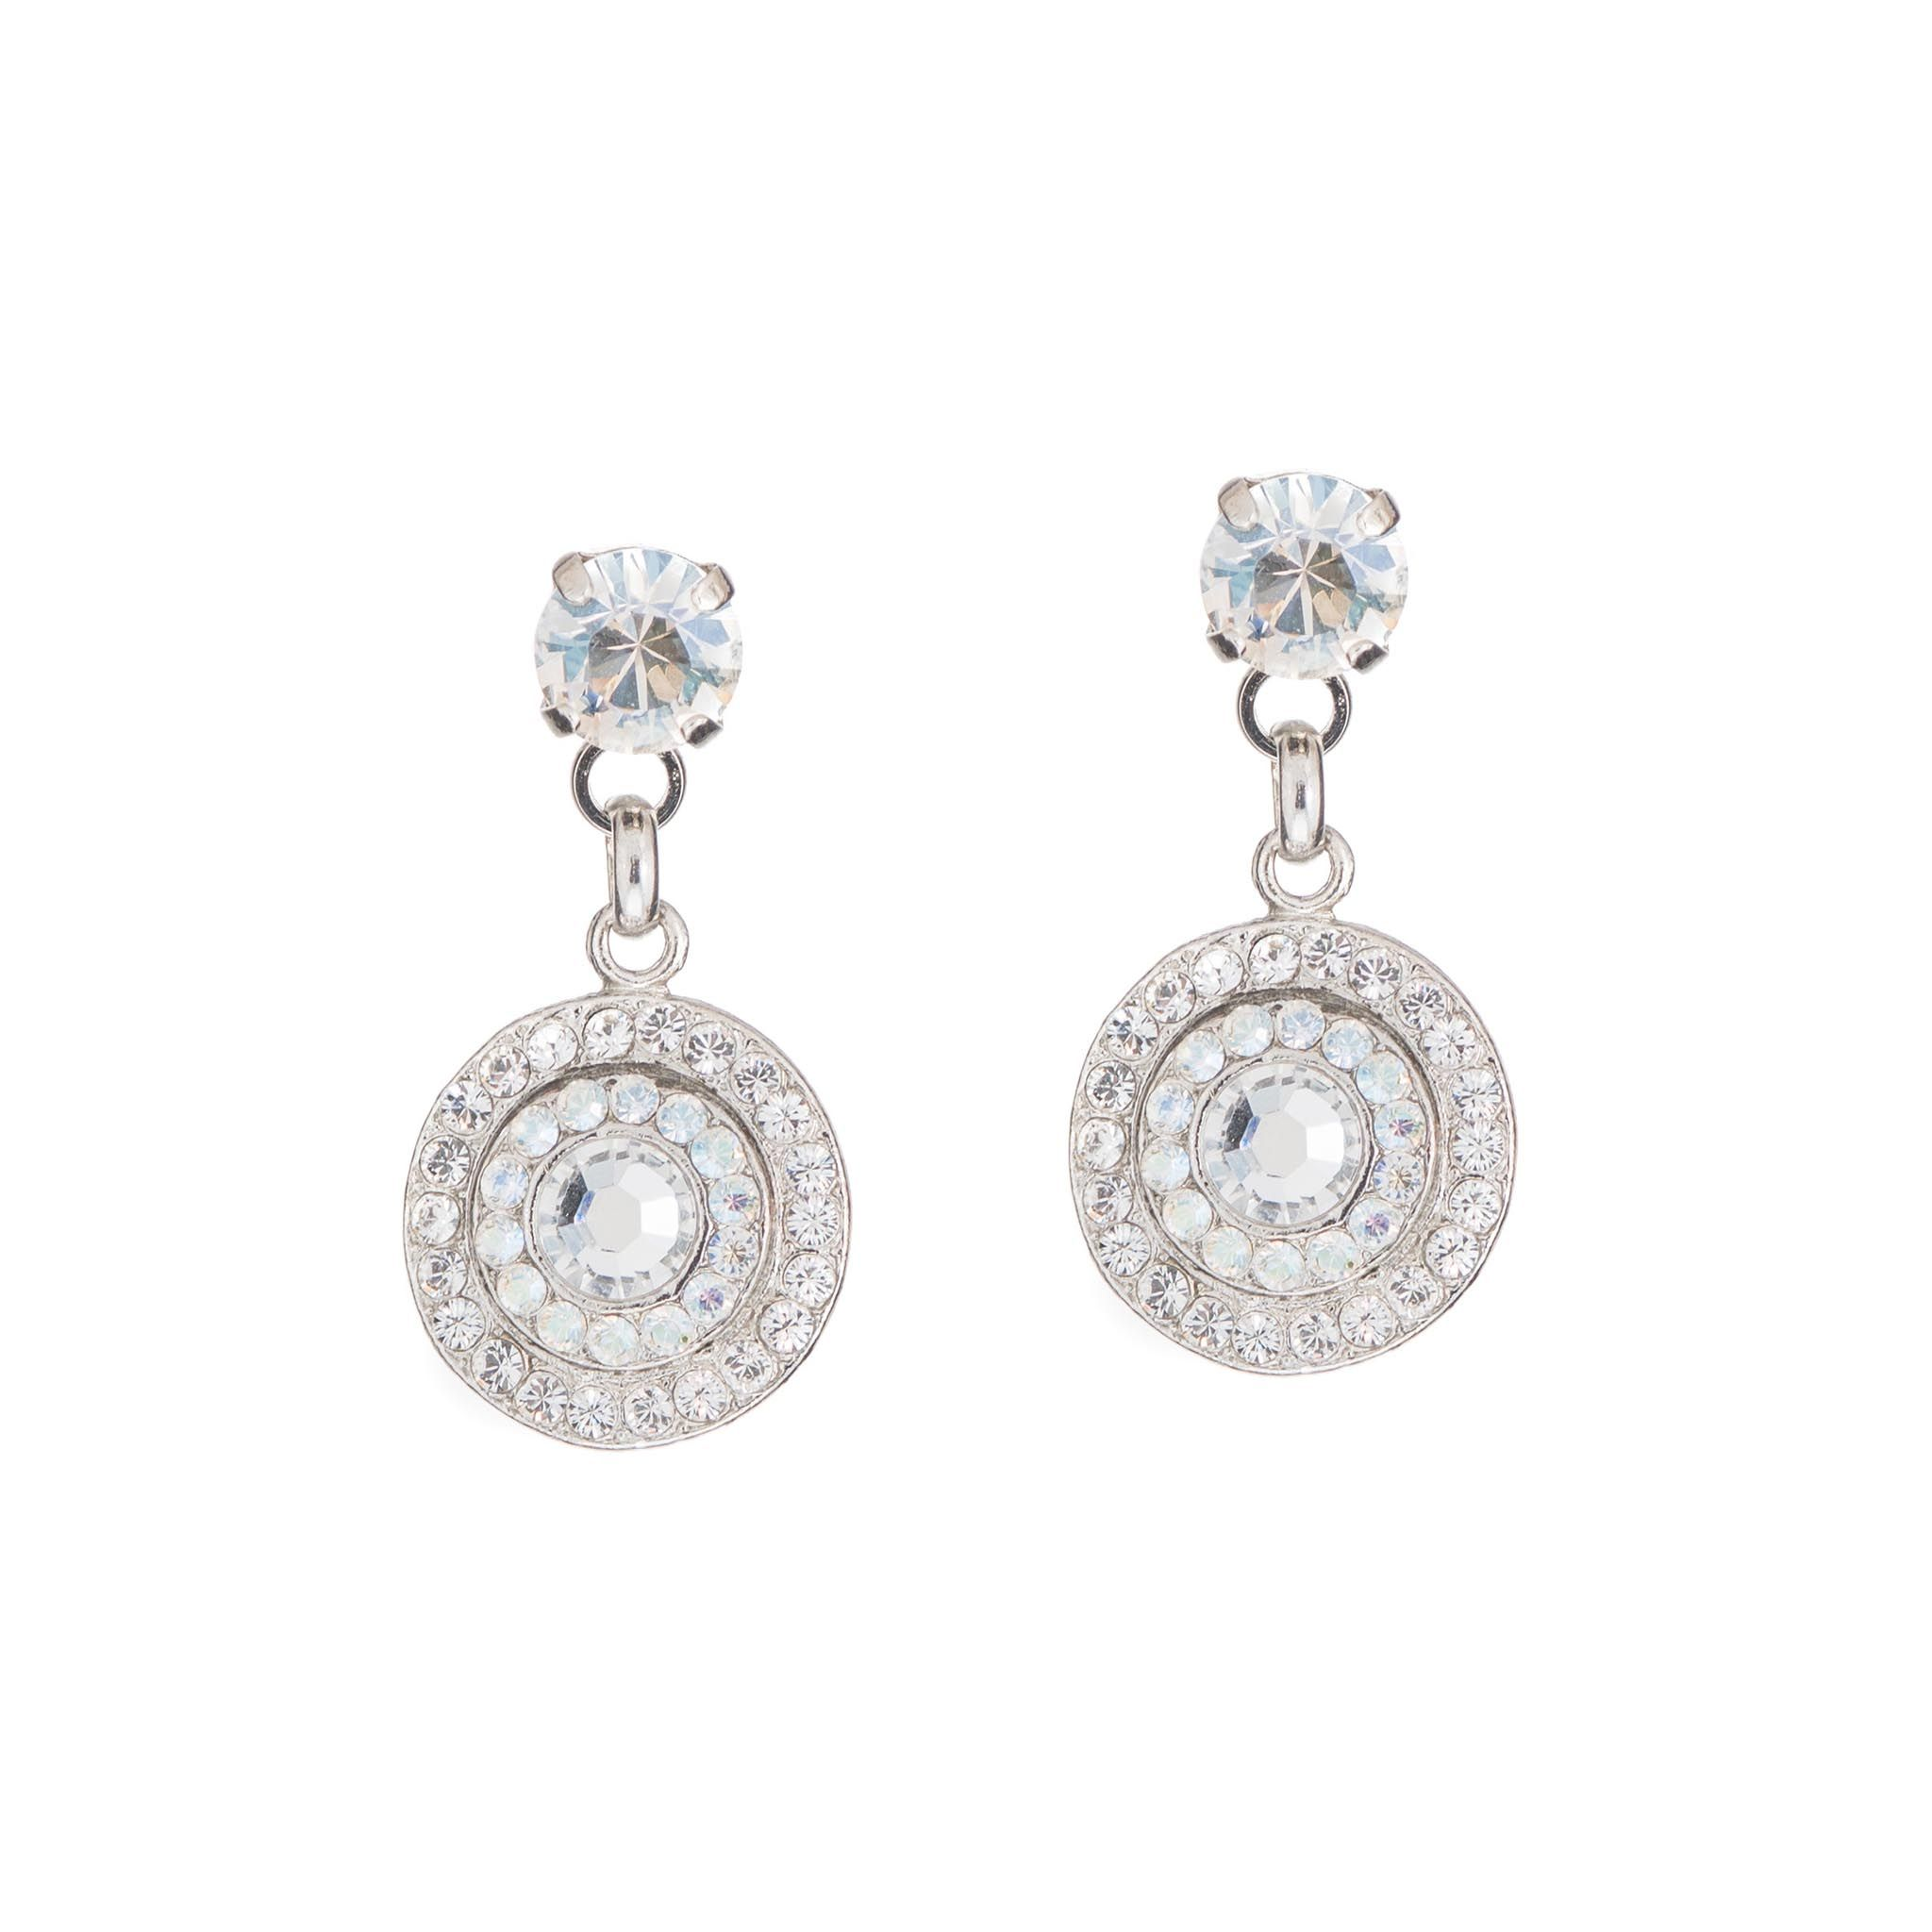 Stunning white gold and Swarovski crystal earrings